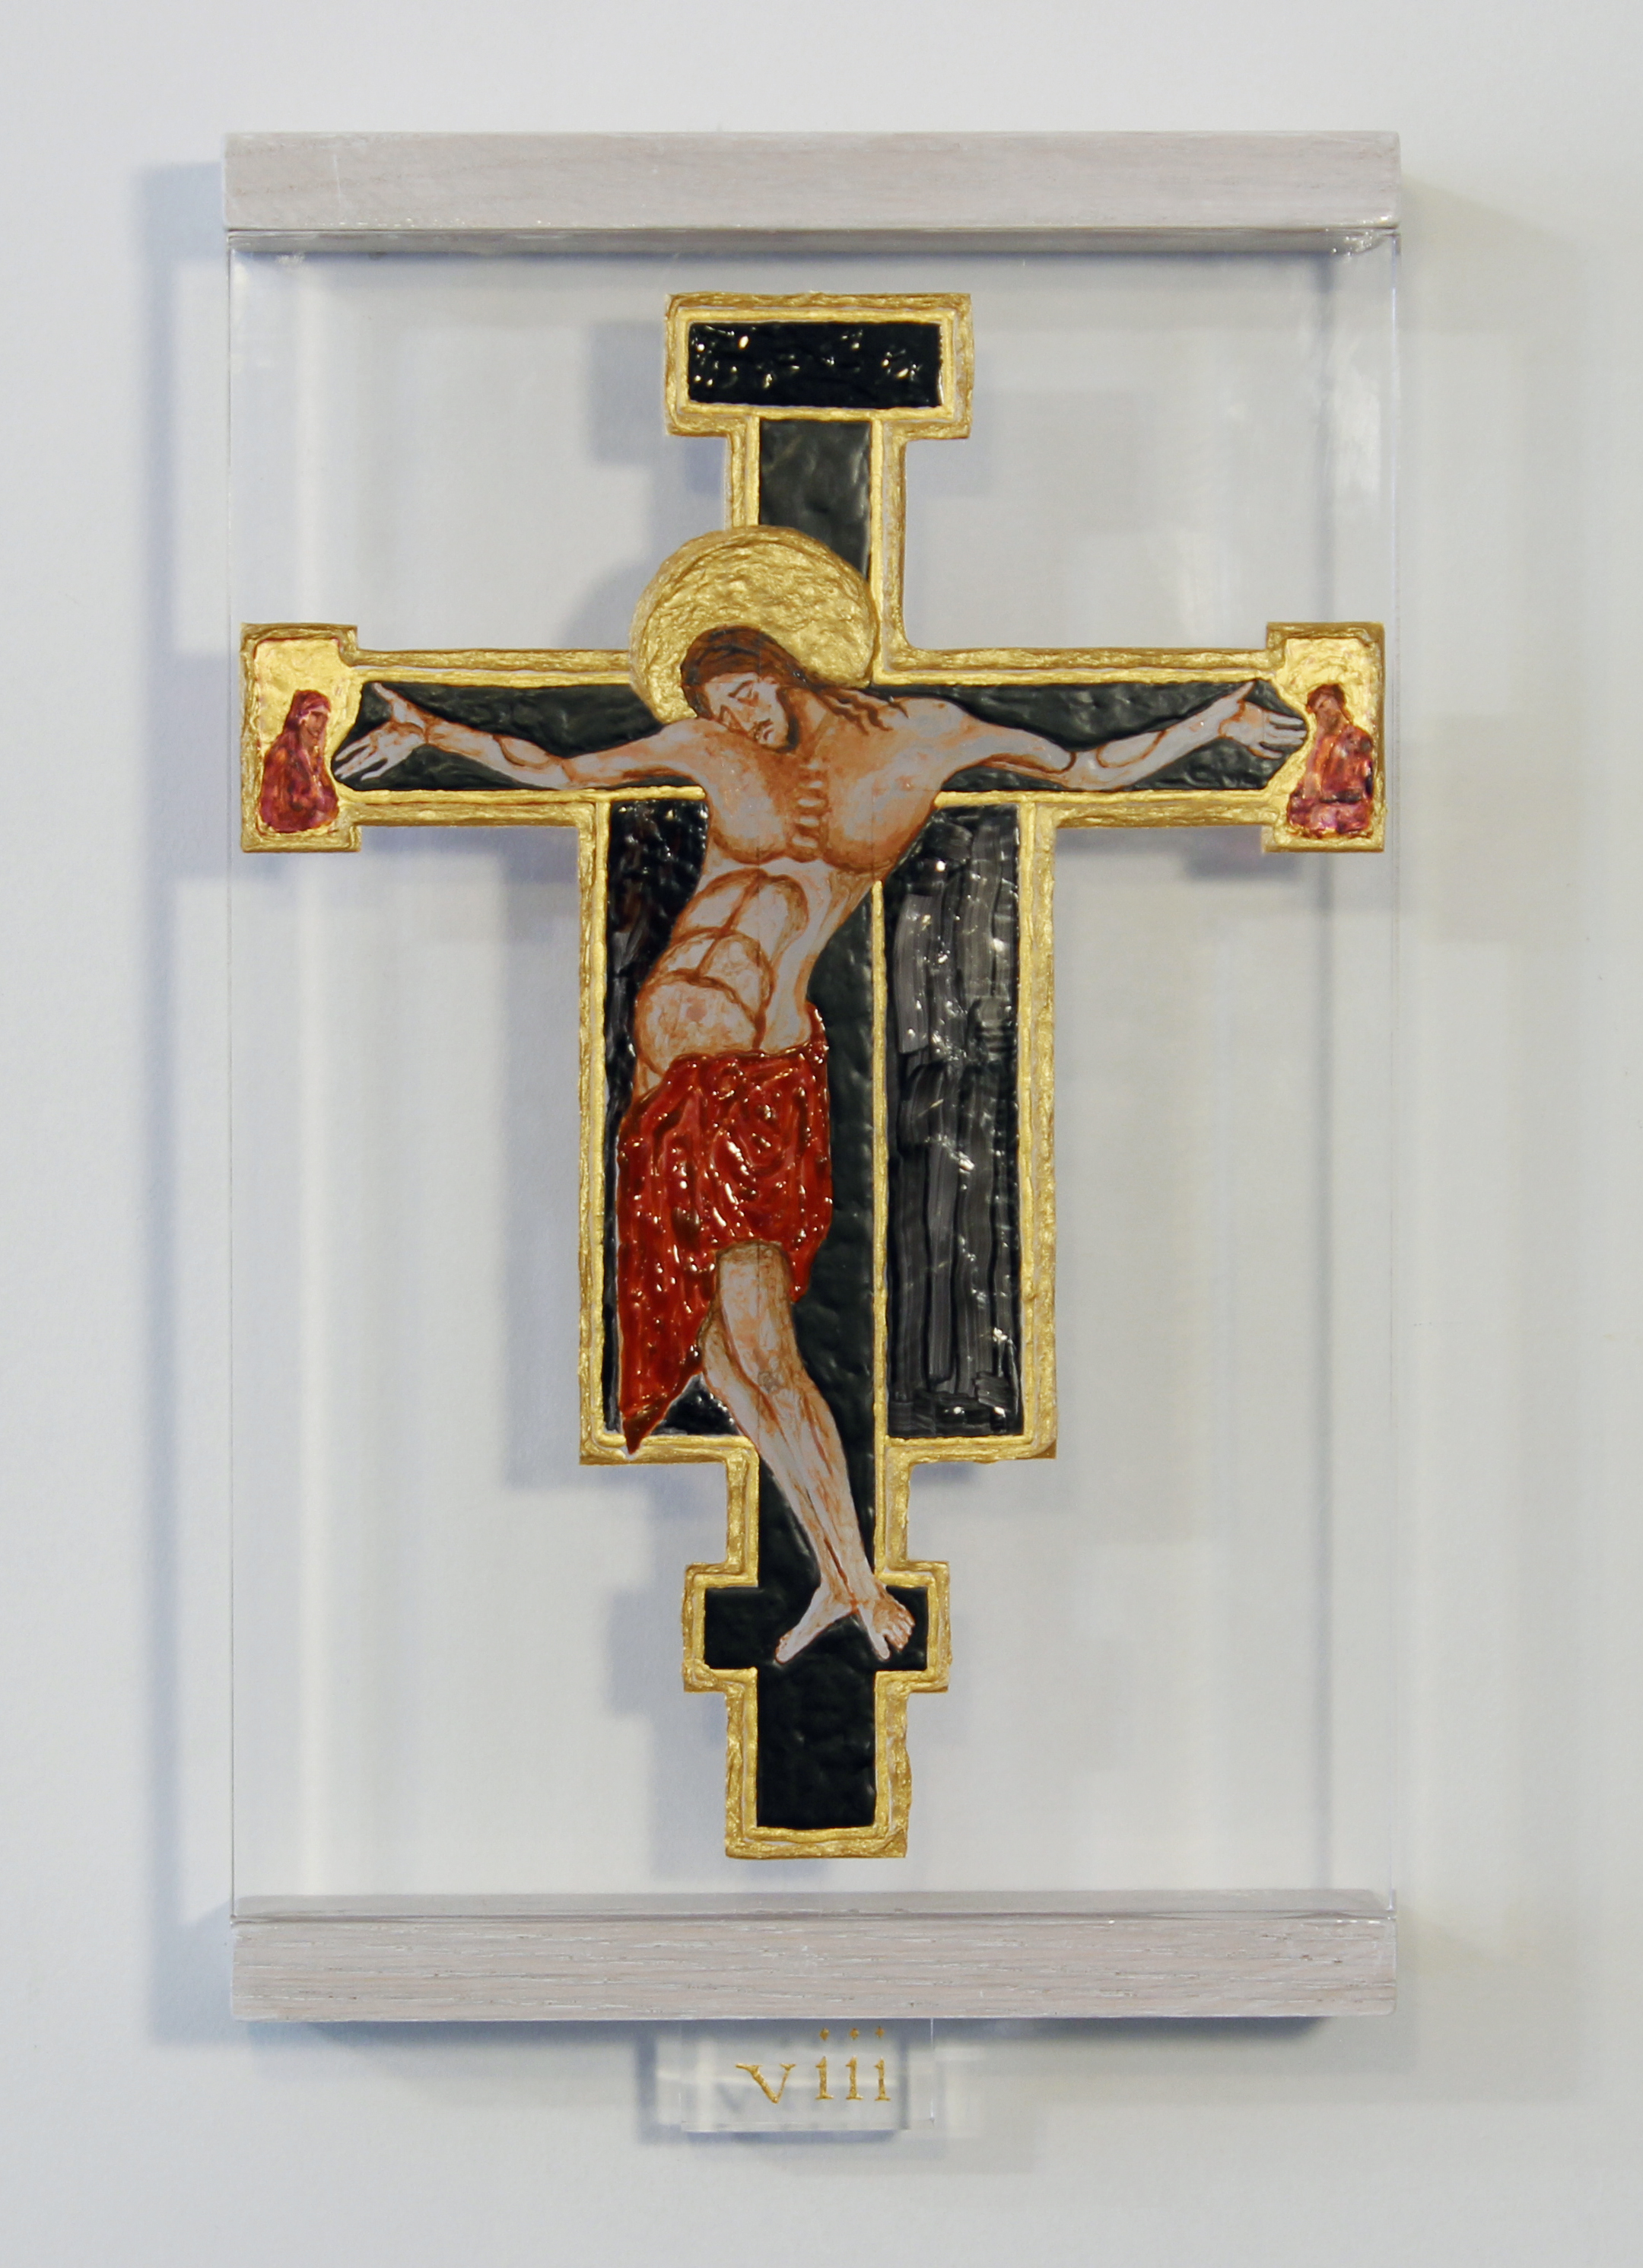 icon 8 - via crucis